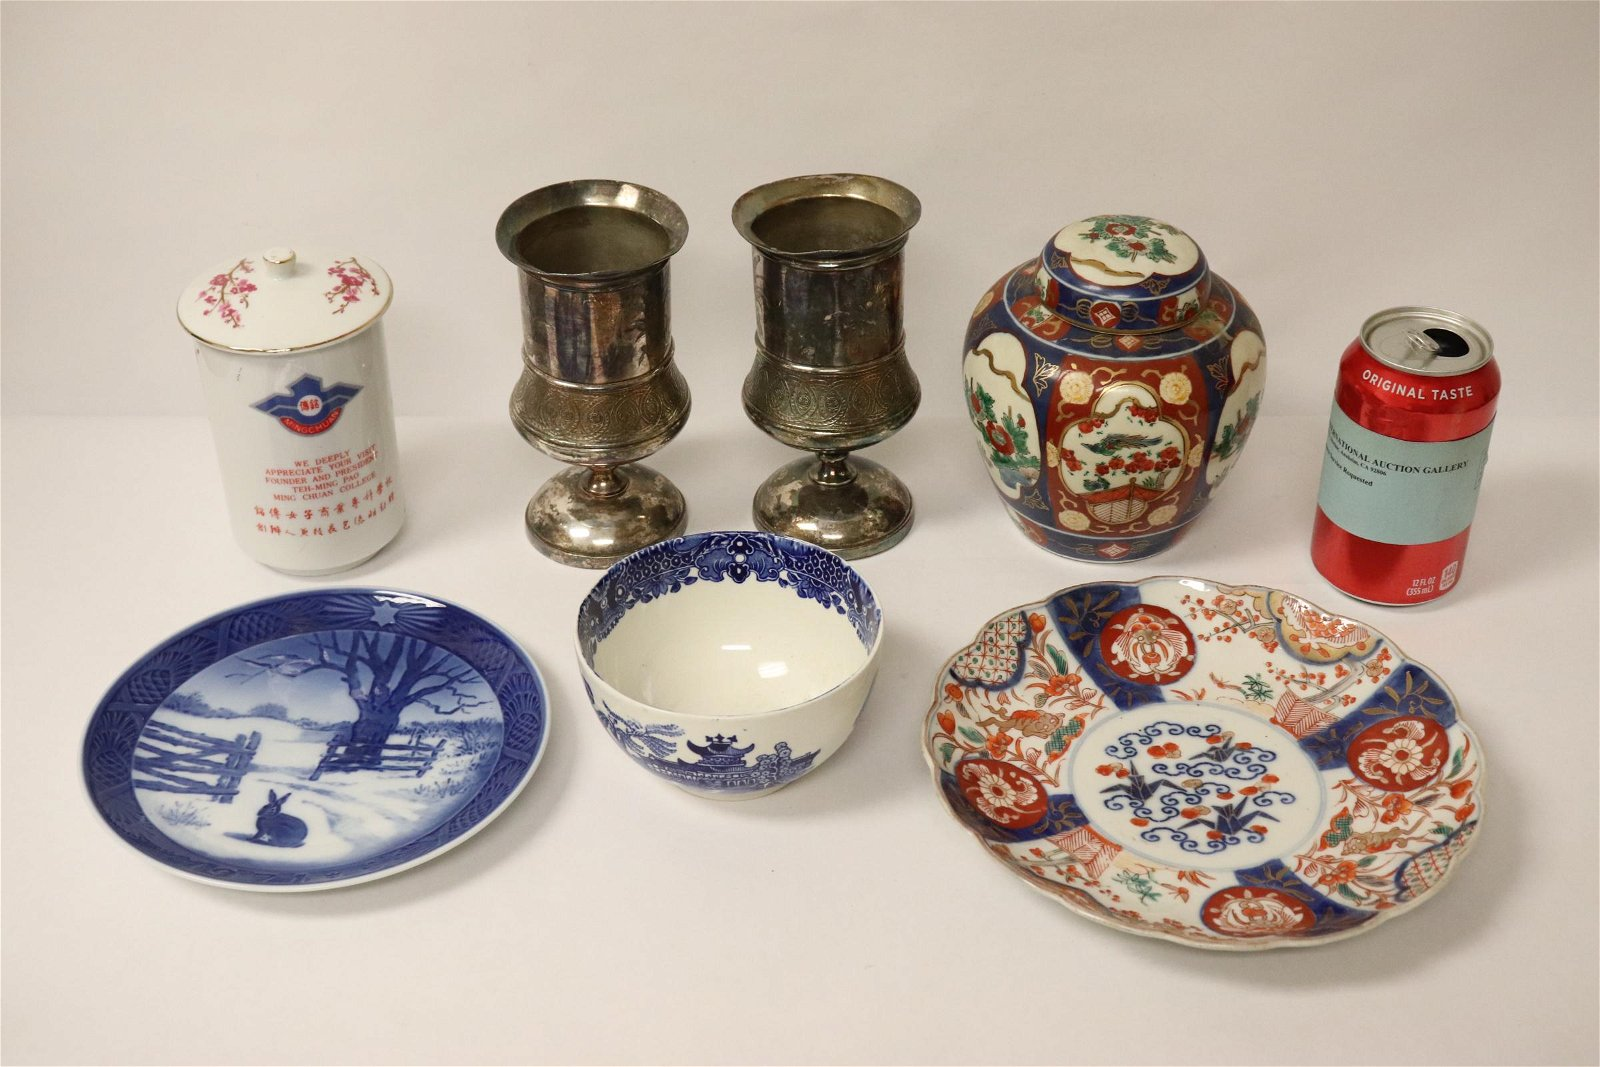 Lot of porcelains, & 2 Victorian silverplate goblets